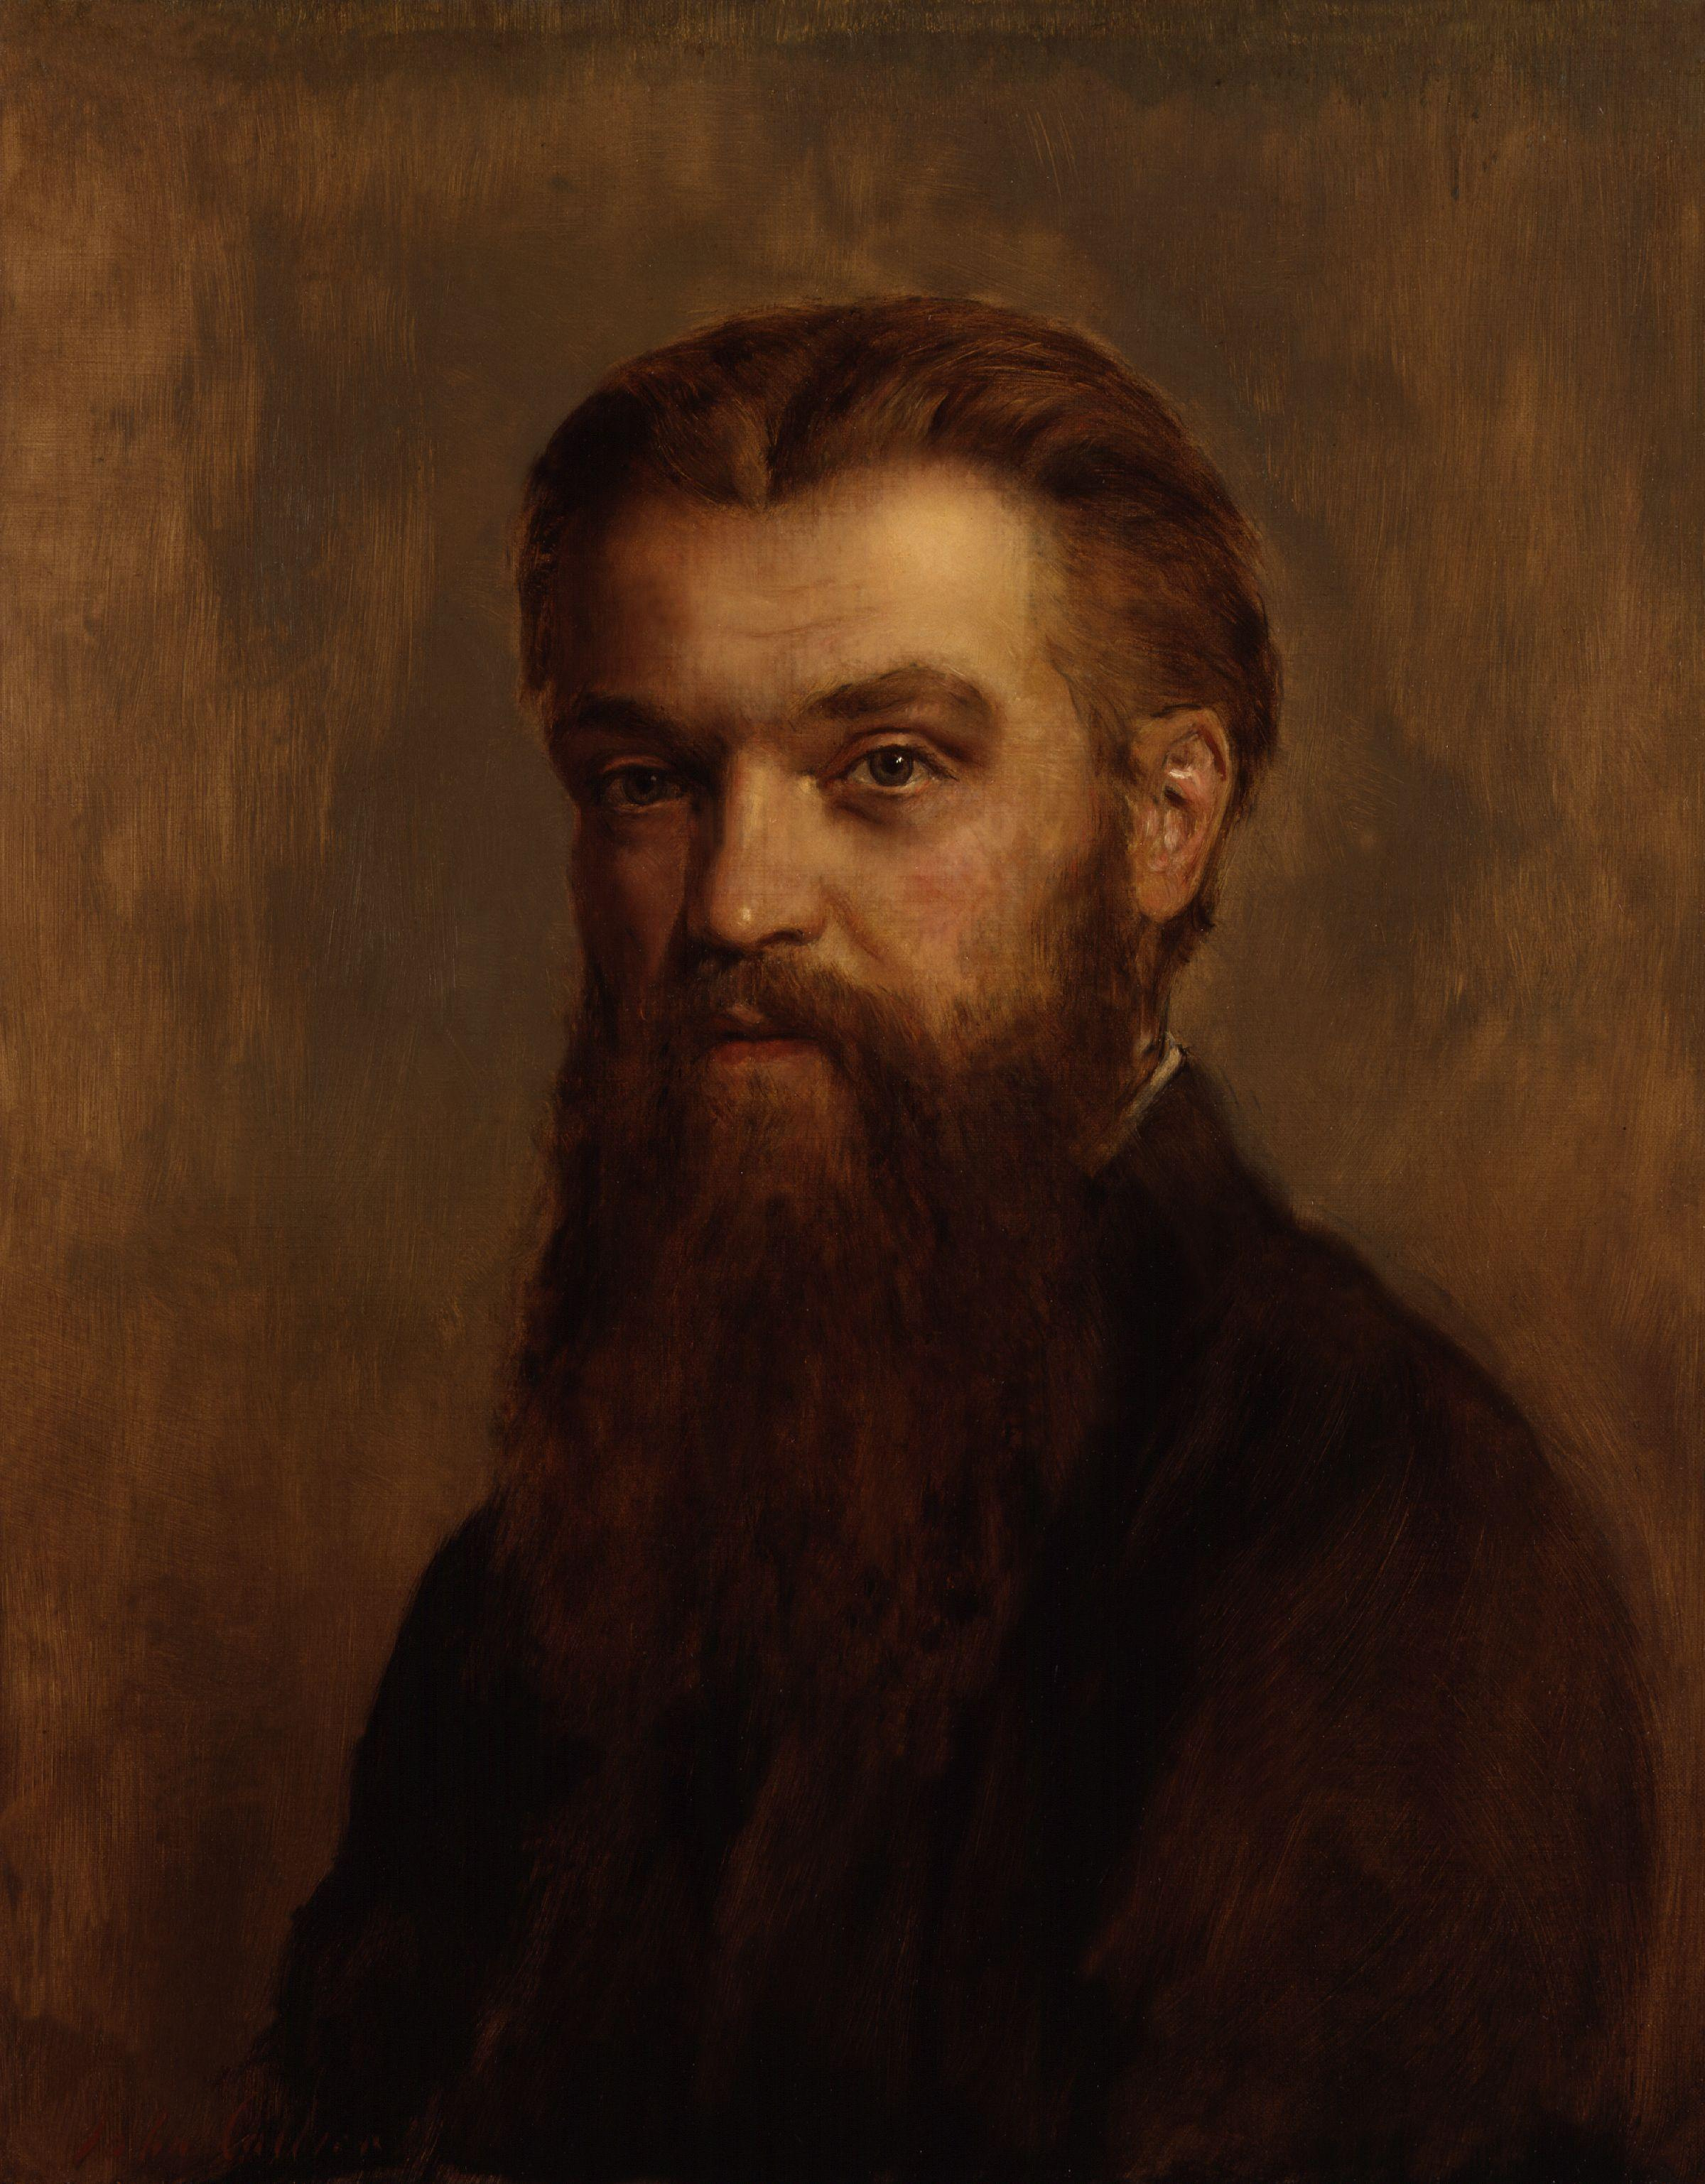 john collier writer John collier biography born in london in 1901, john collier was the son of emily mary noyes and john george collier he had one sister, kathleen mars collier.